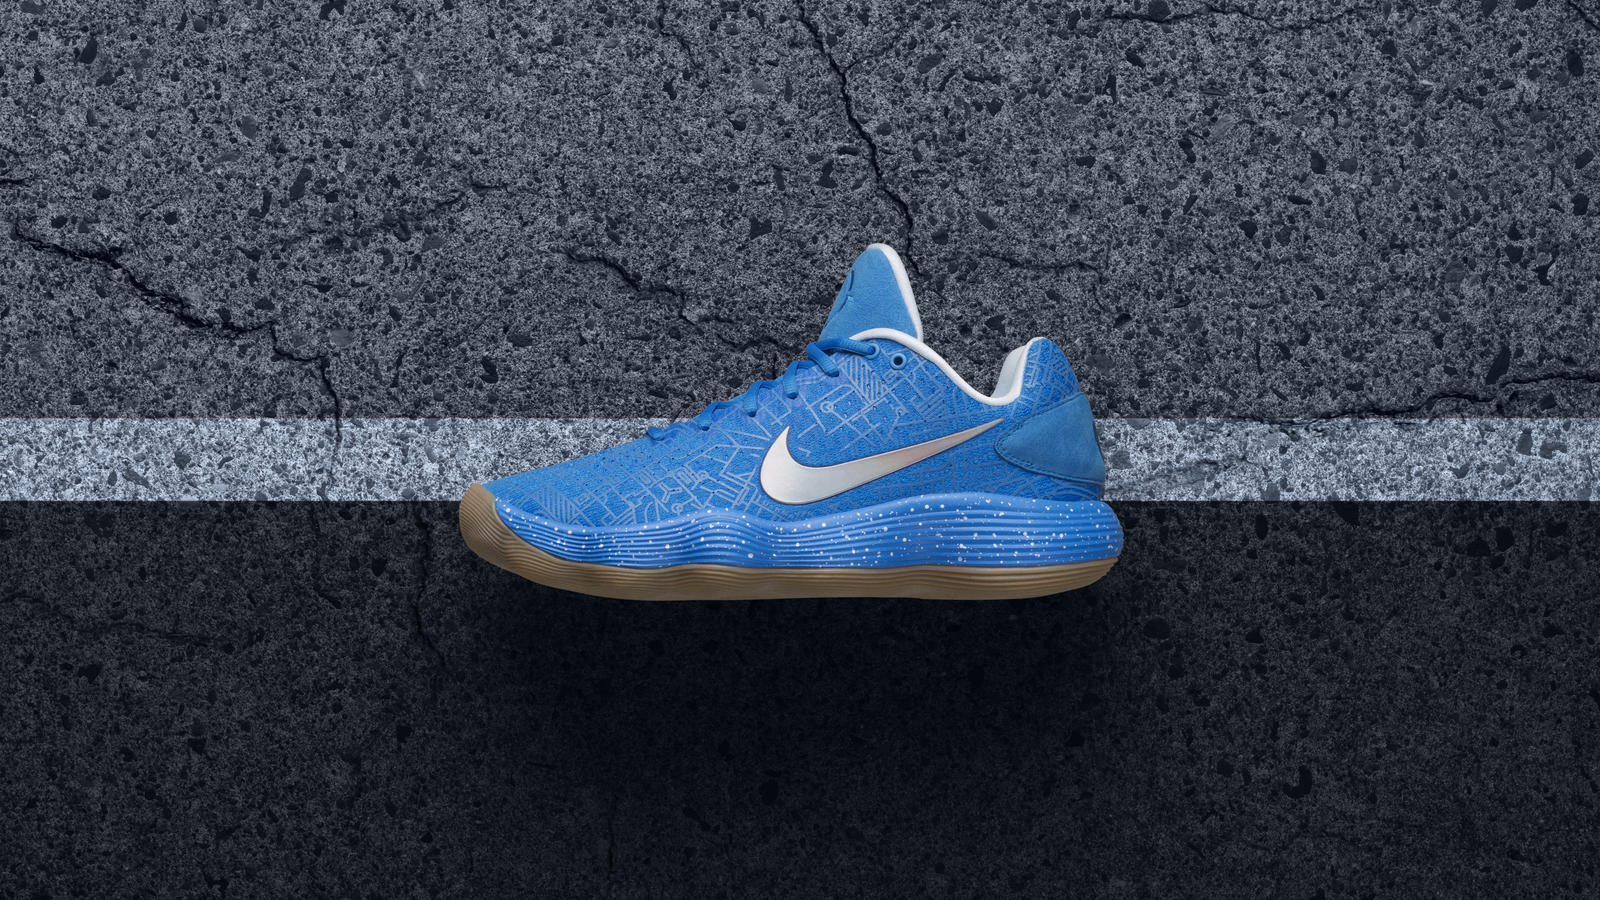 c6918a8bd0a These Six New Nike Hyperdunk Low Styles Celebrate Basketball s Global  Capital Cities 17